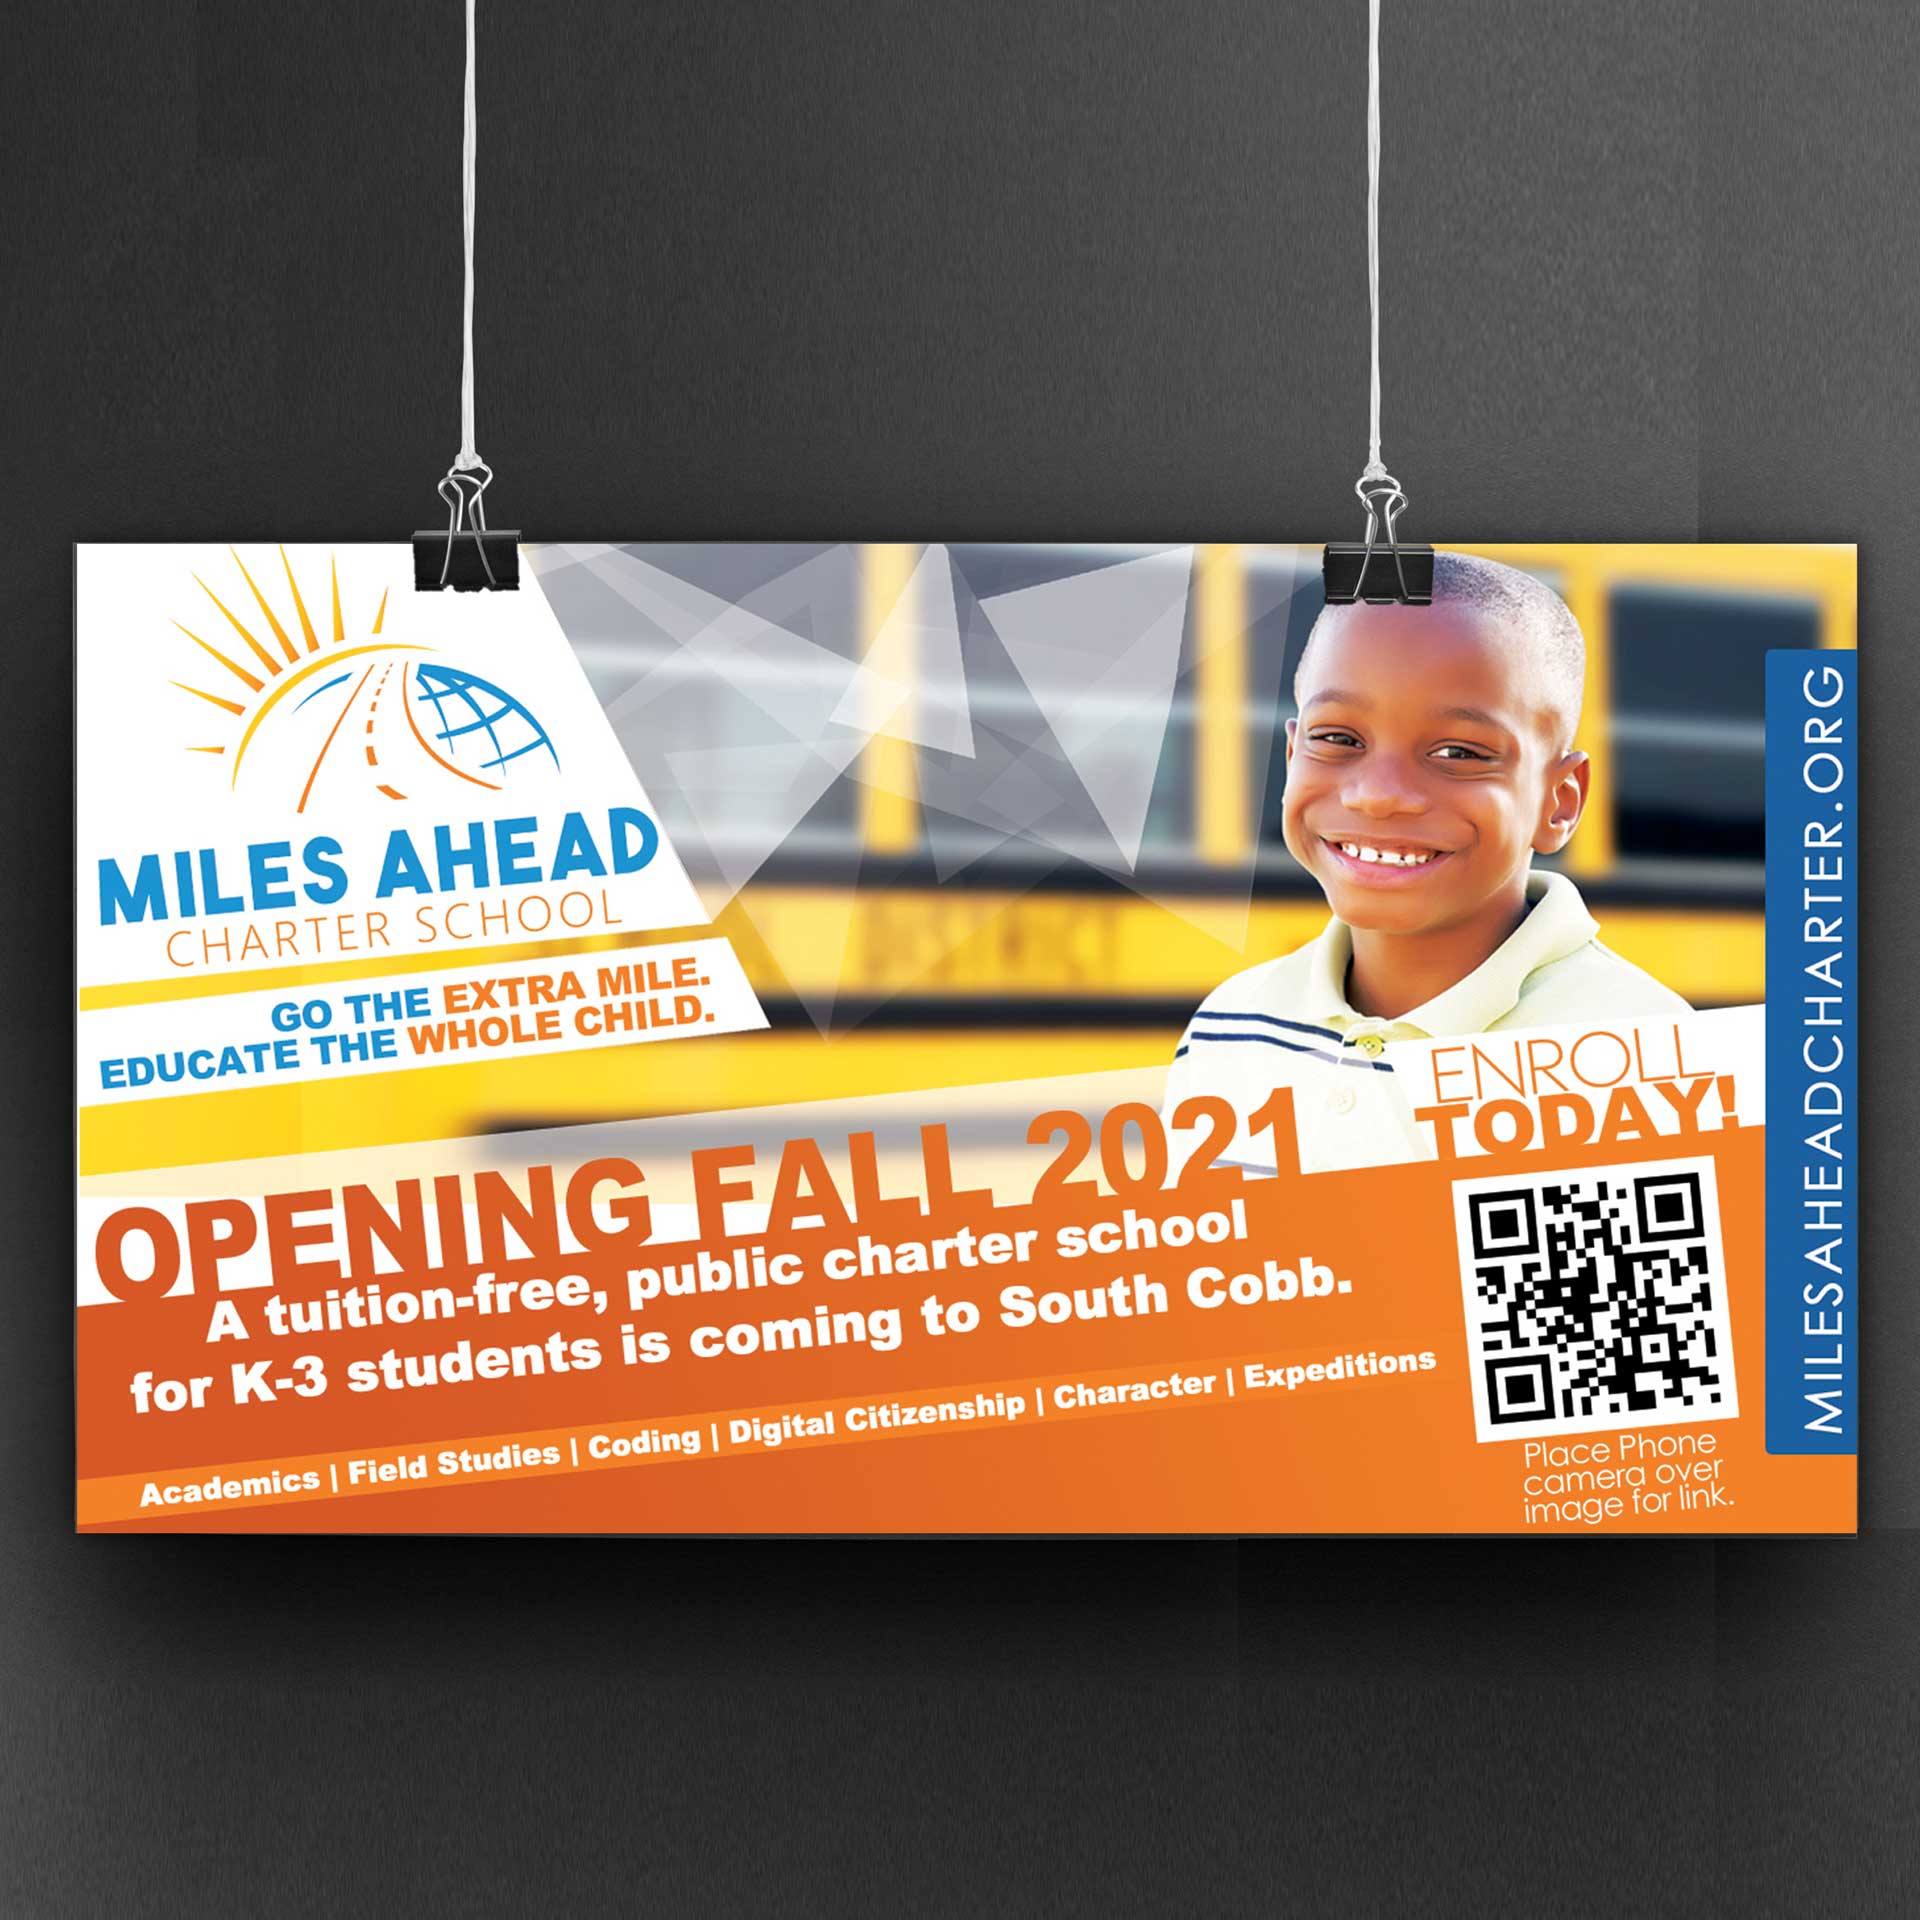 Miles Ahead Charter School Social Marketing